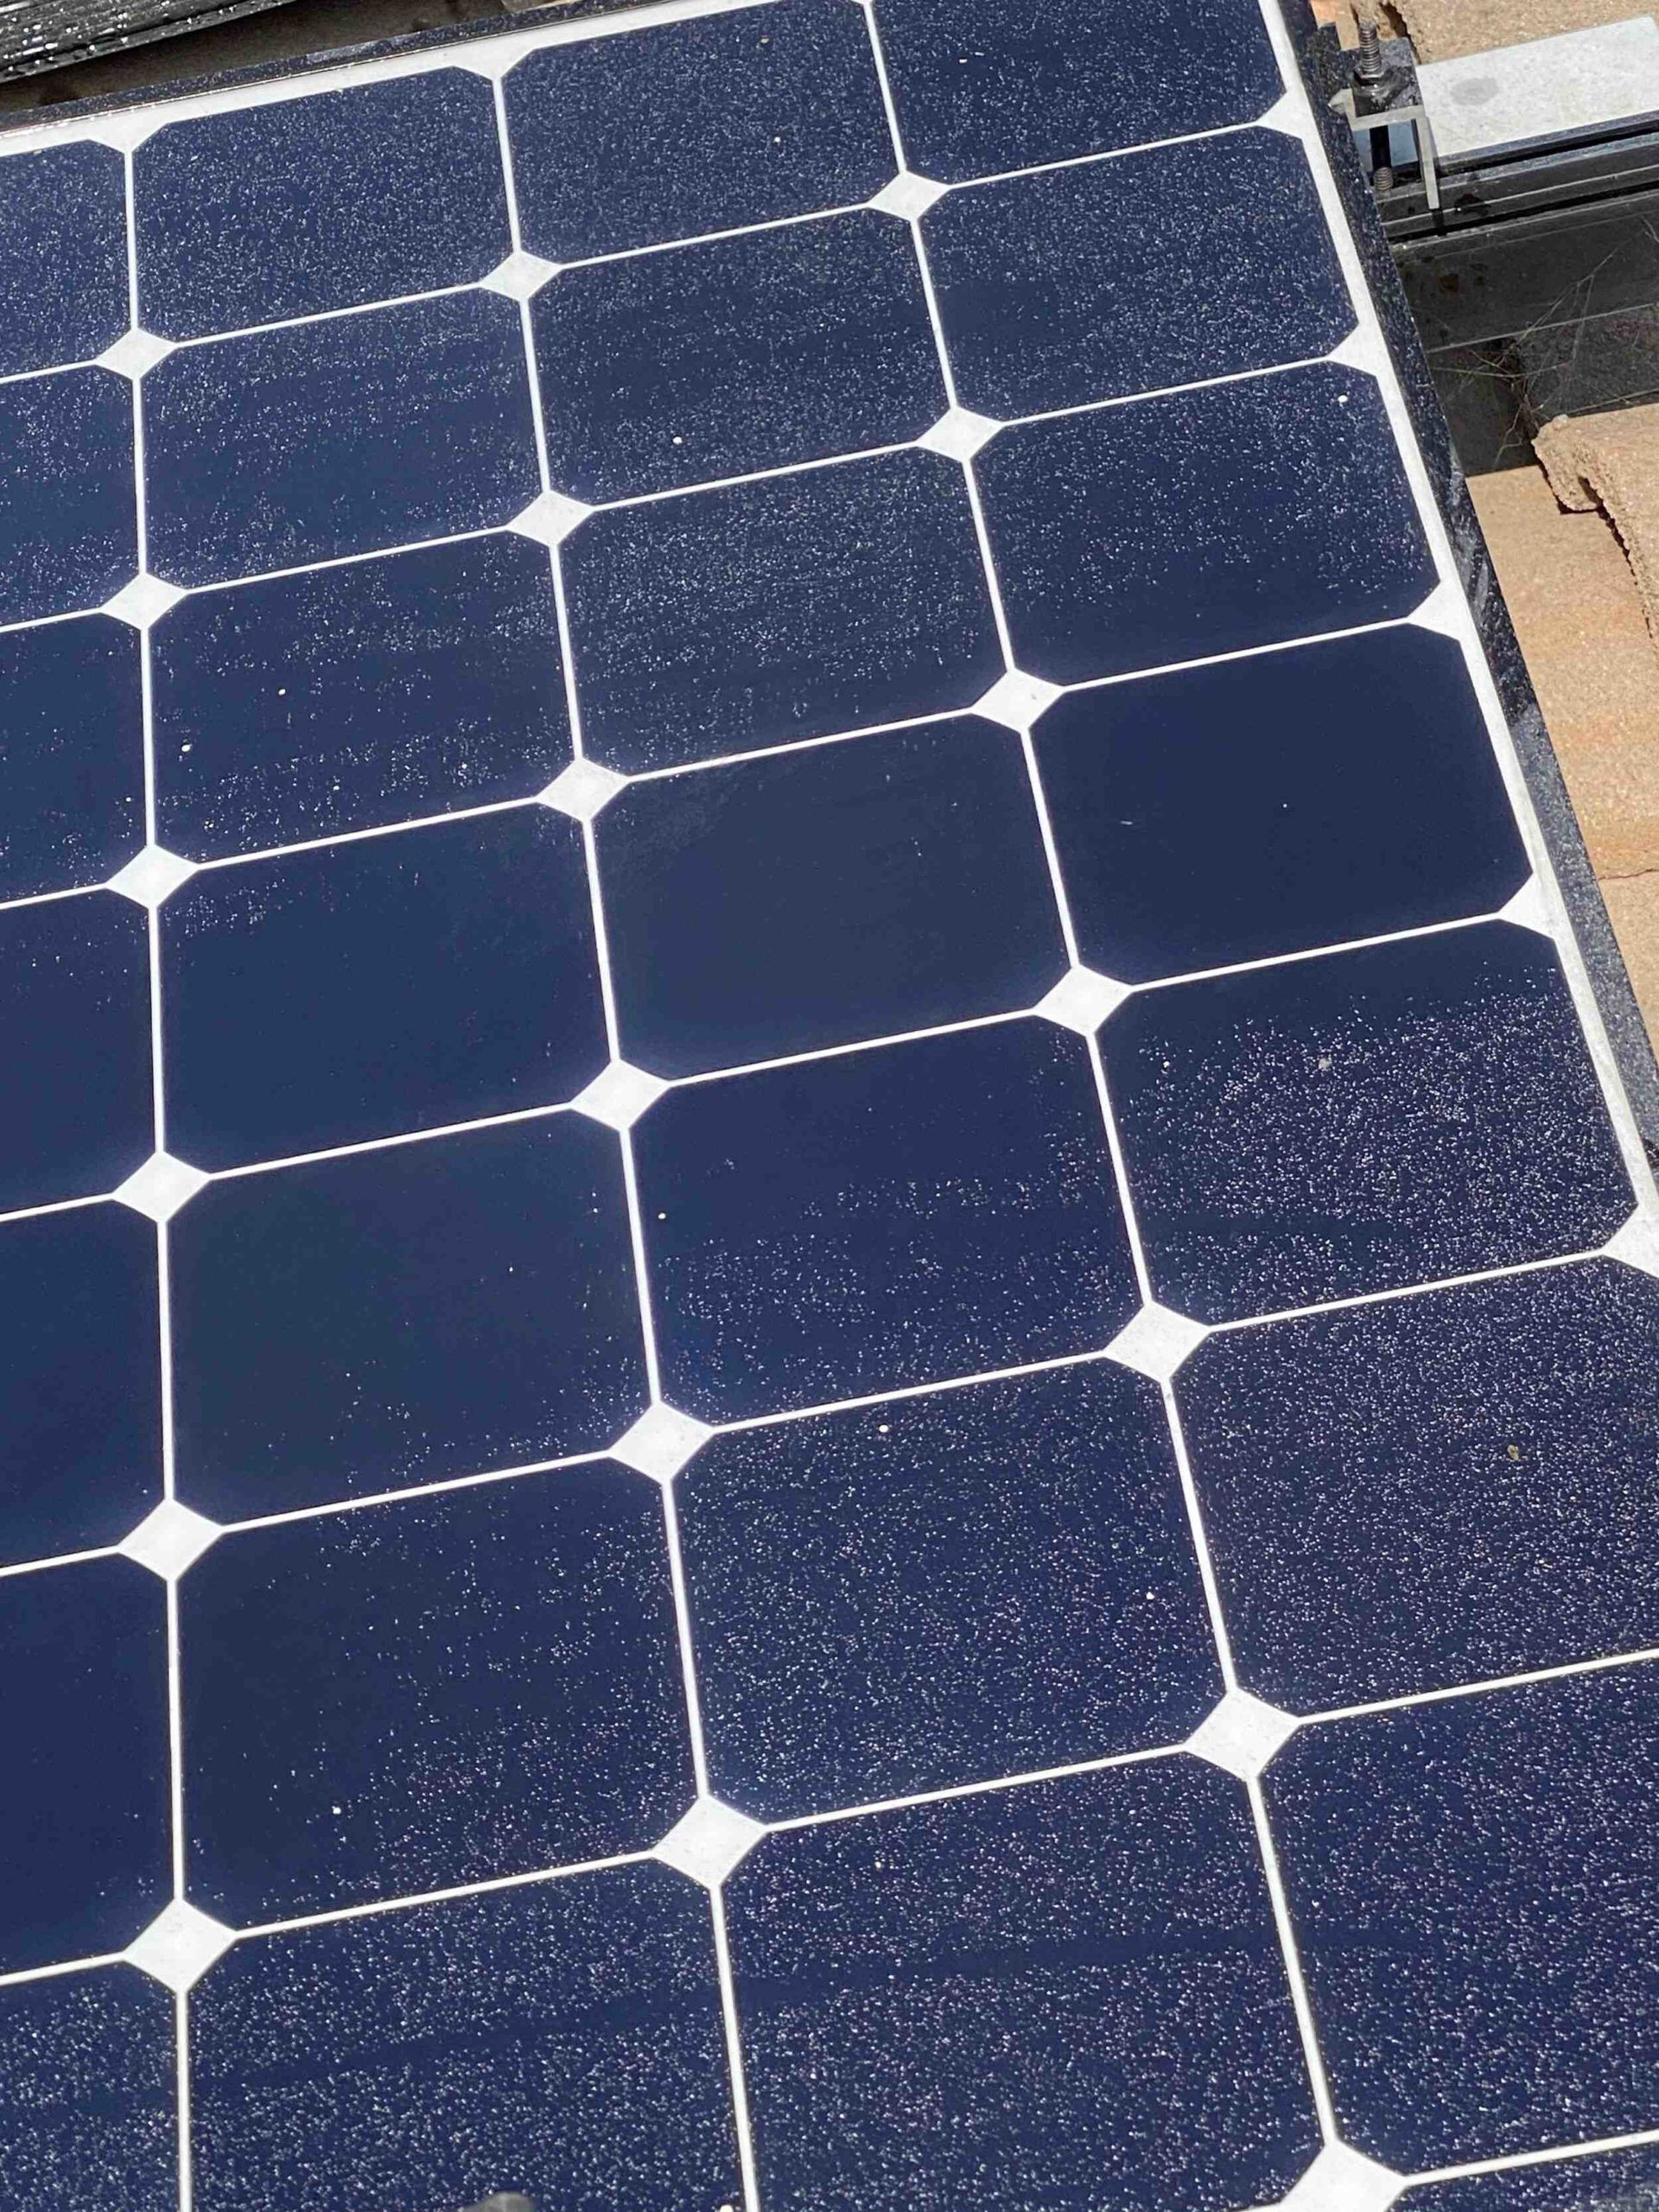 How much does it cost to put 10 solar panels on a roof?